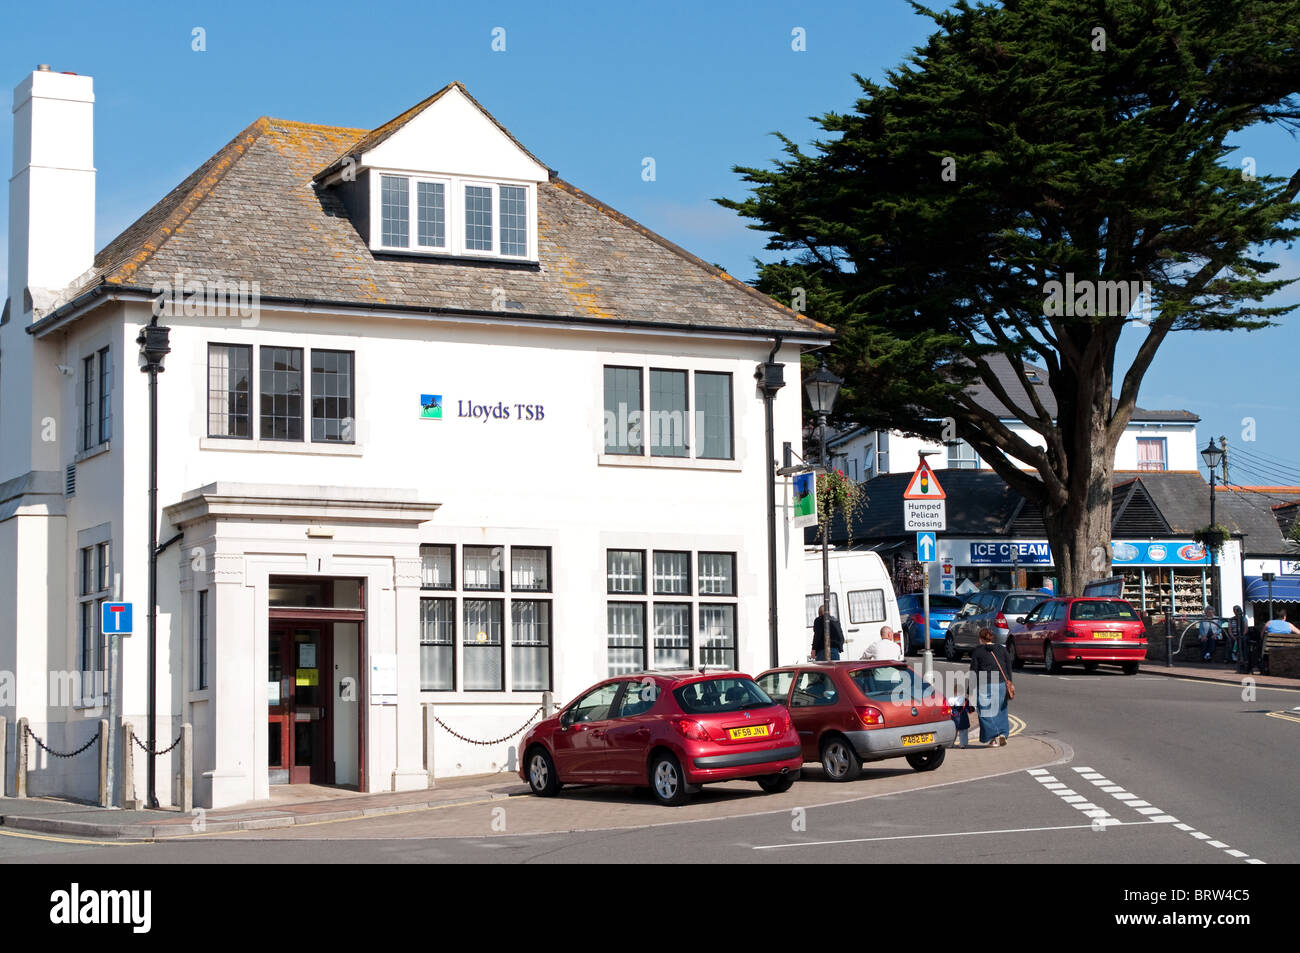 a former home converted into a small branch of Lloyds Bank in bude, cornwall, uk - Stock Image